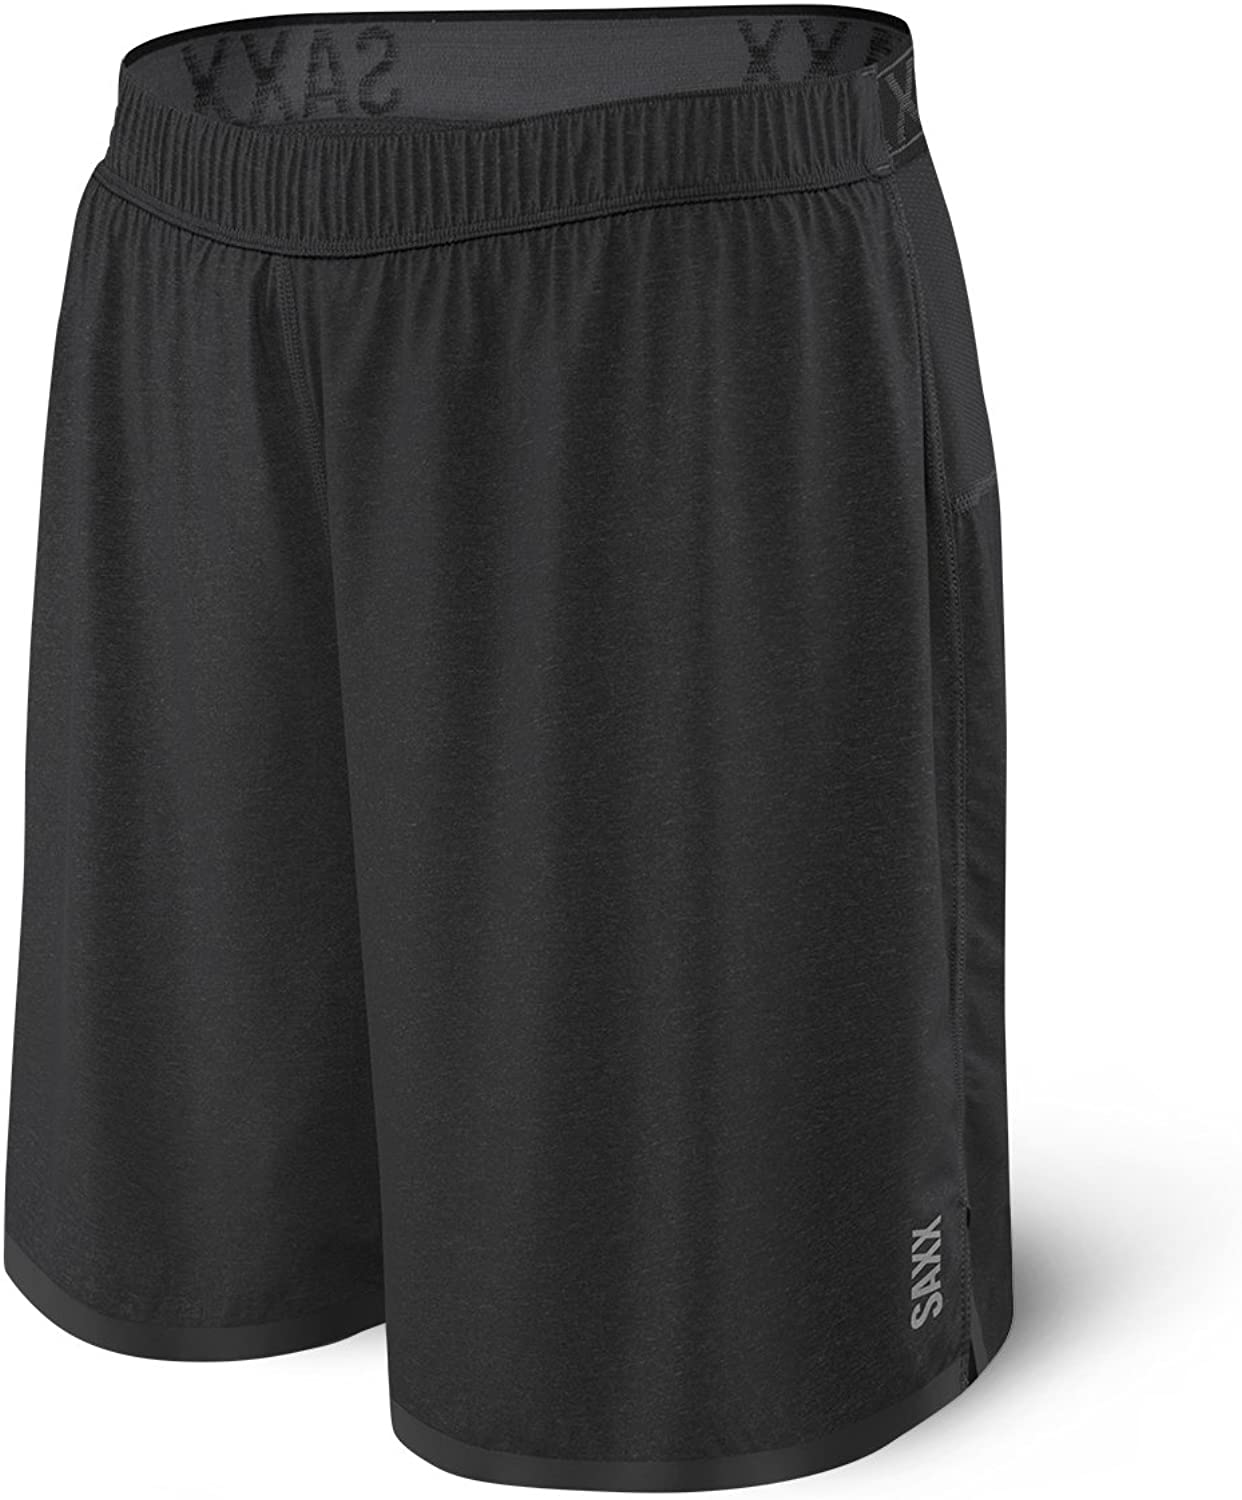 Saxx Pilot 2N1 Running Shorts - Choose Color and Size